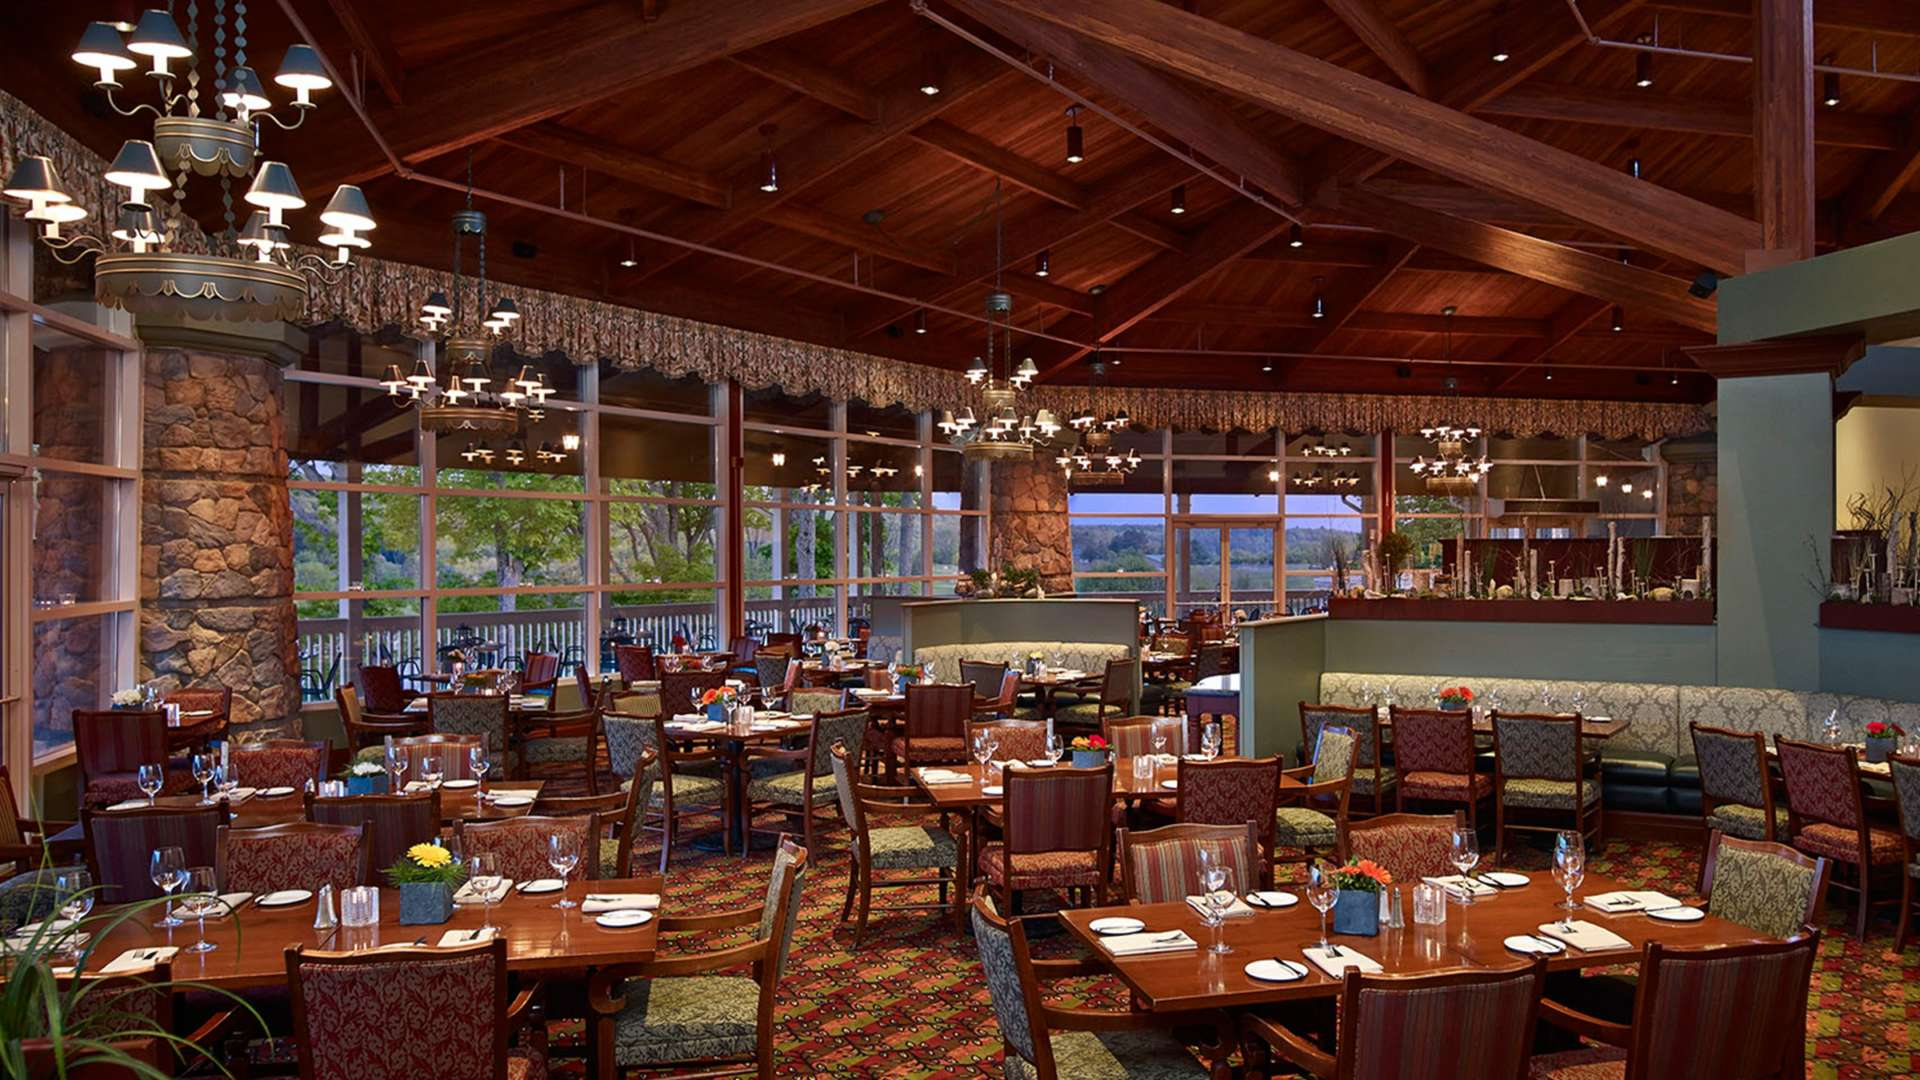 Eclipse group dining venue